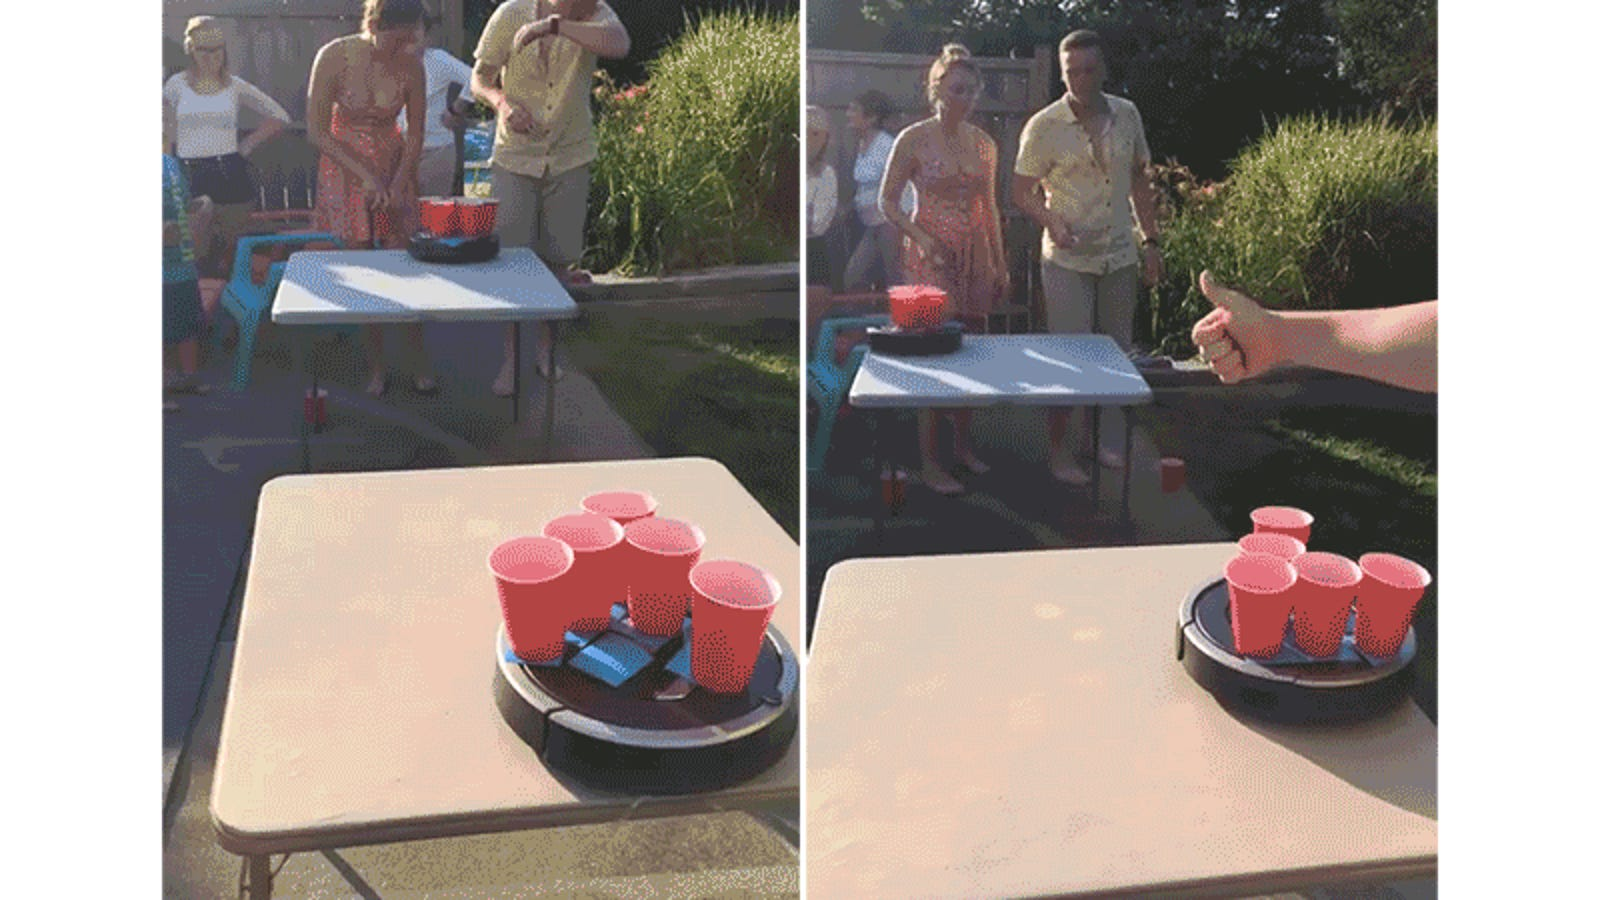 adding rolling roombas to beer pong looks crazy fun